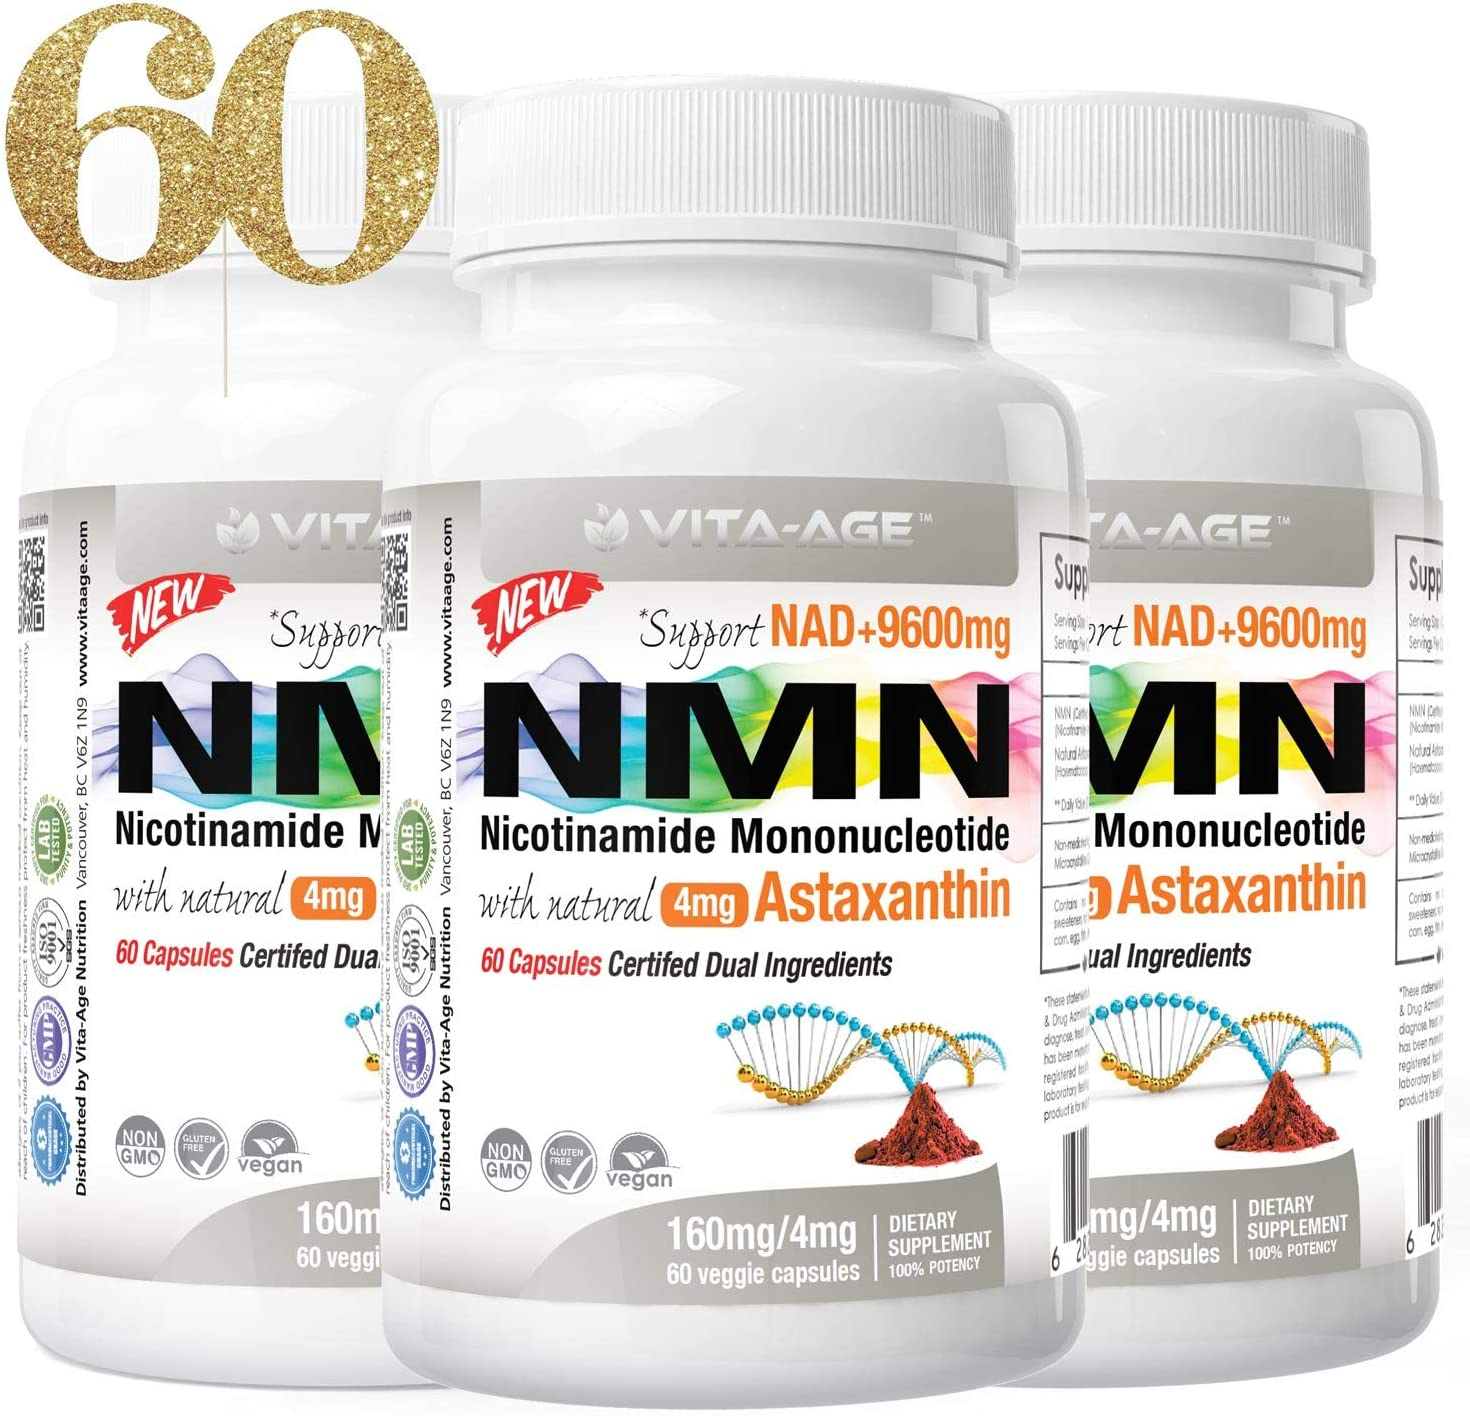 Vita-Age NMN Lab New York Mall Tested 374mg 8mg Serving High with Astaxanthin Complete Free Shipping